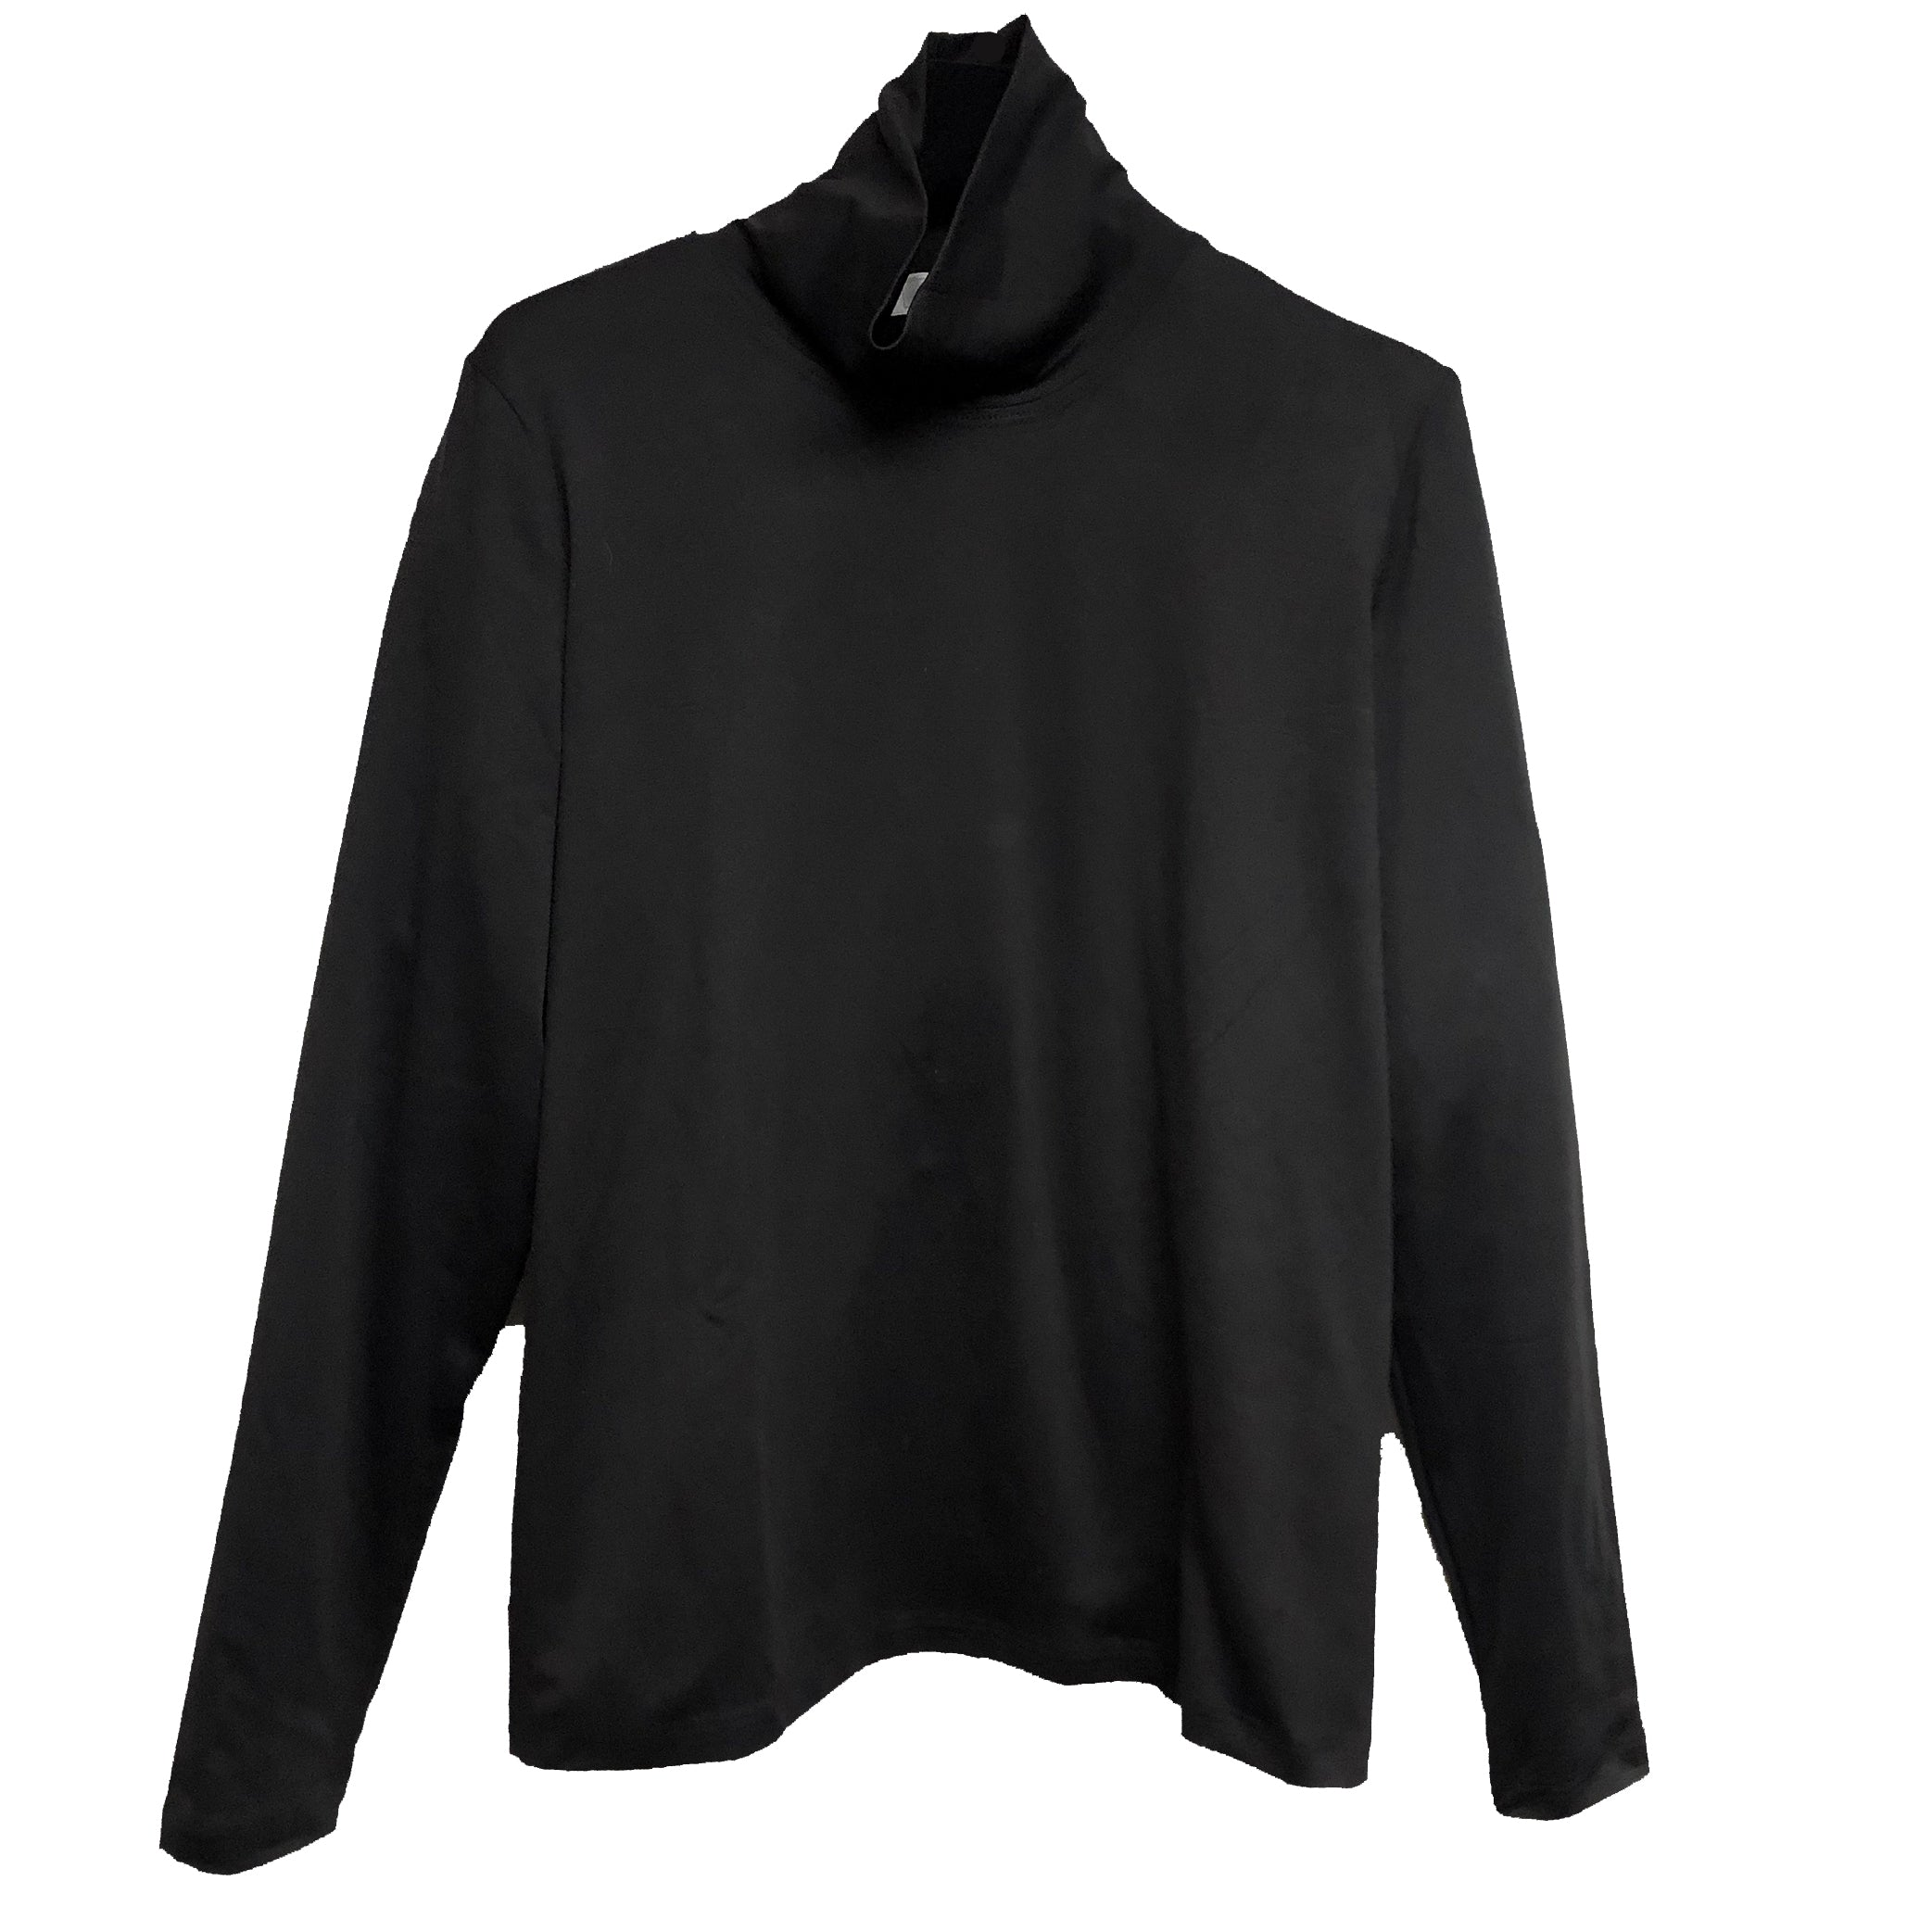 A'Nue Shirt, Turtleneck, Black